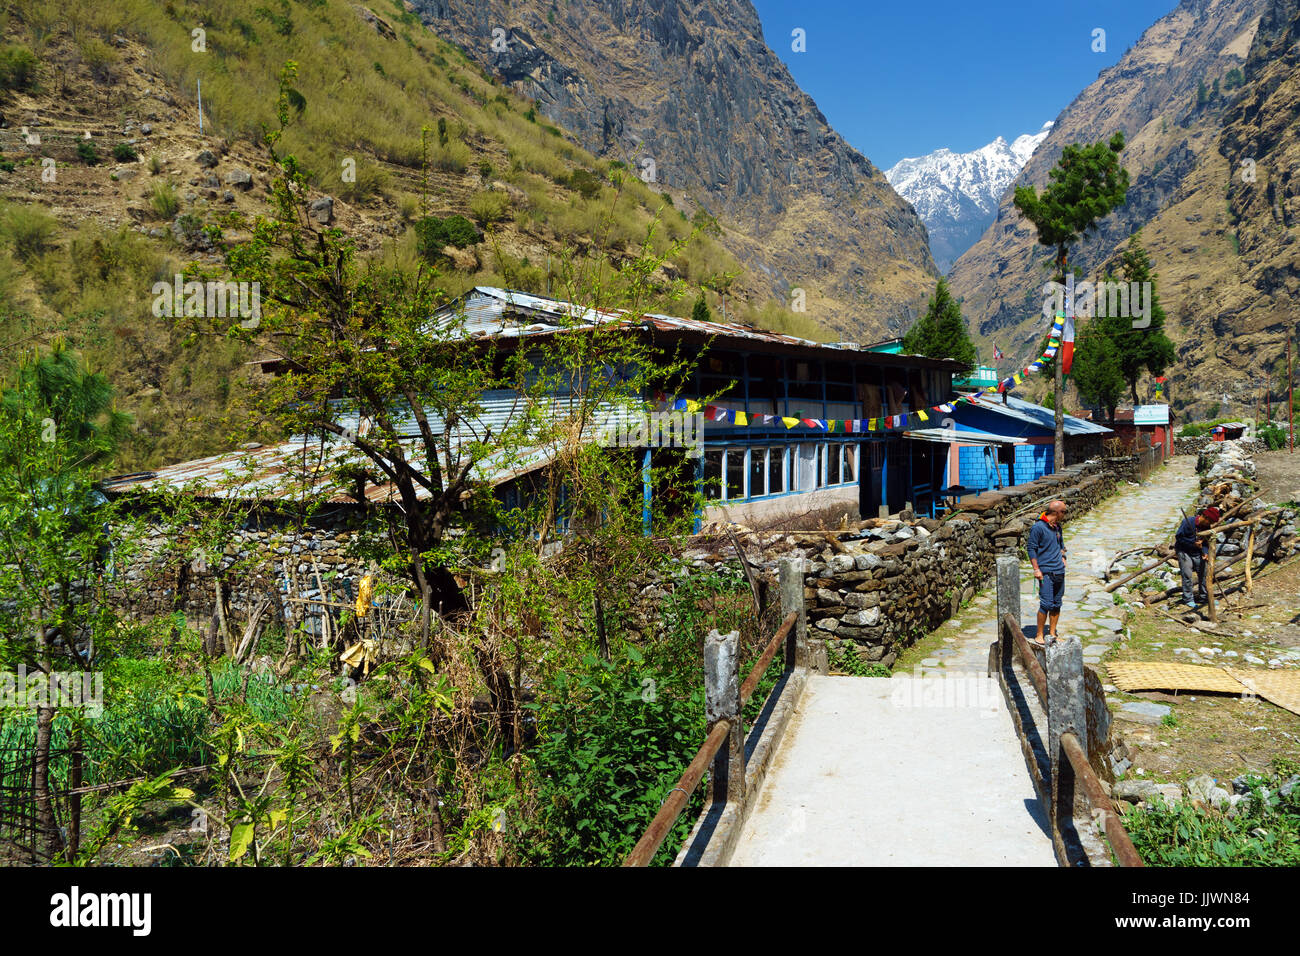 Guesthouse in the village of Tal, Annapurna region, Nepal. - Stock Image